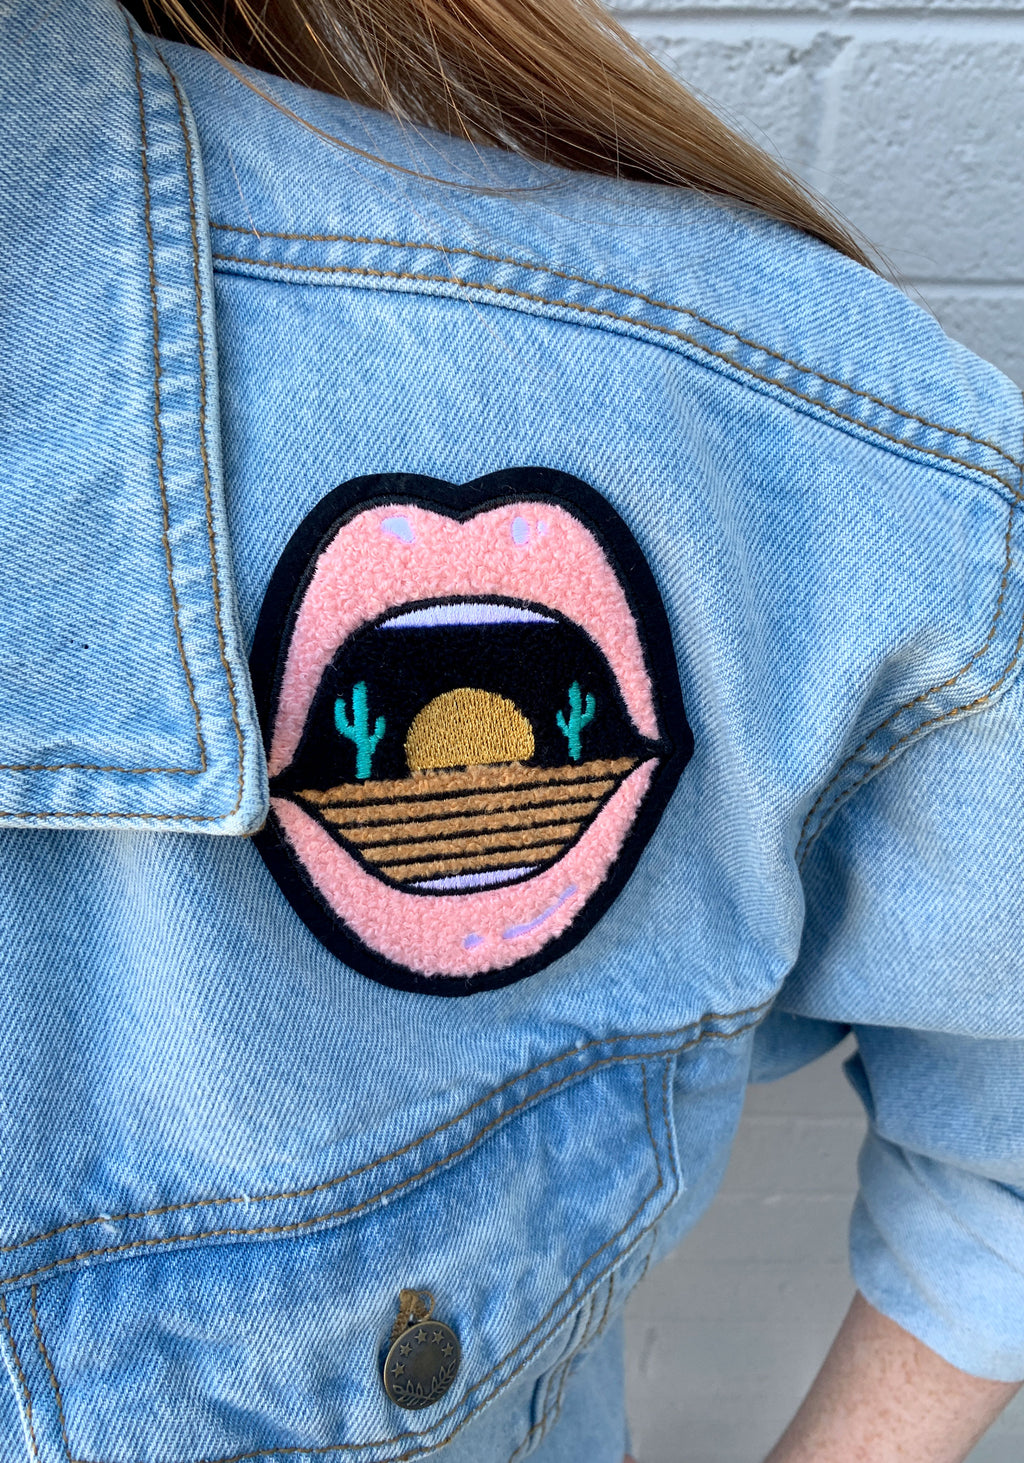 Dry Mouth Chenille Patch / patches for jackets backpack / sticker iron on / desert cactus southwest souvenir / mouth lips